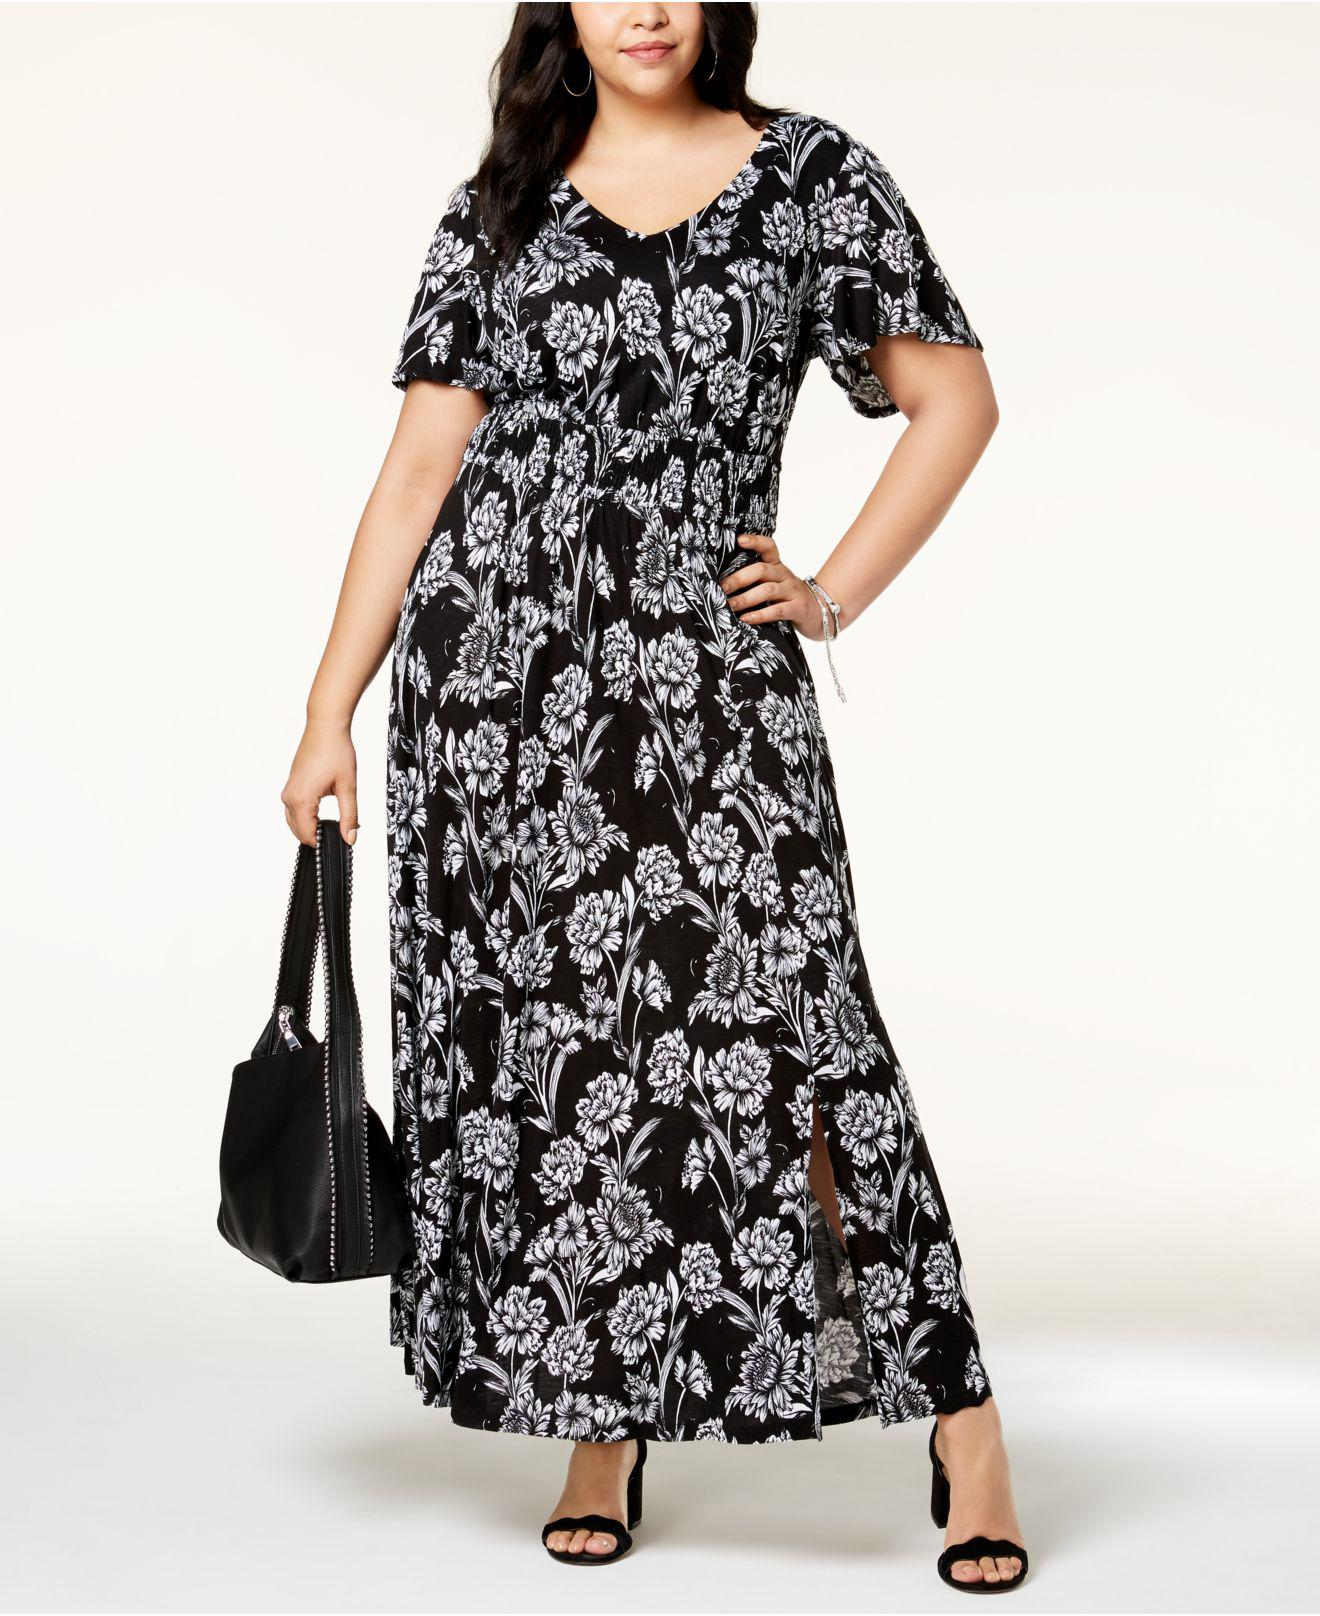 Plus Size Maxi Dresses With Flutter Sleeves